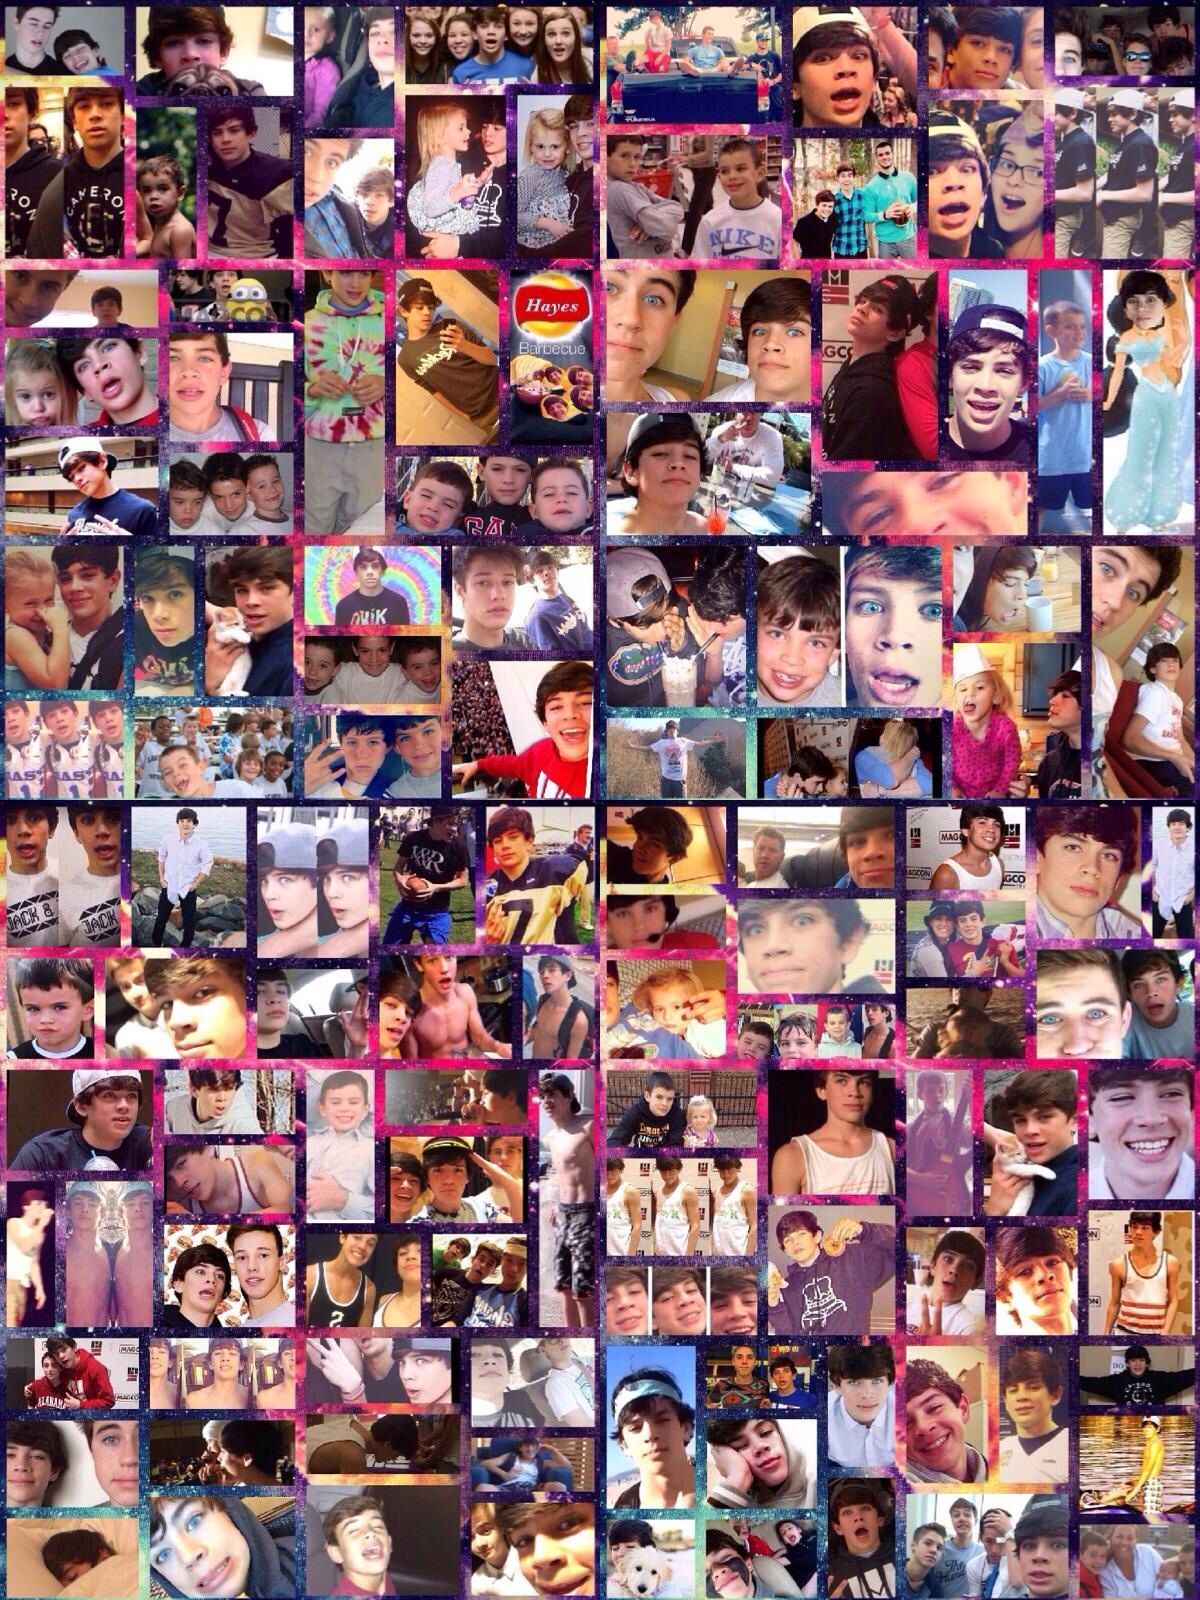 Hayes Grier collage - Hayes Grier collage - in 2020 | Hase